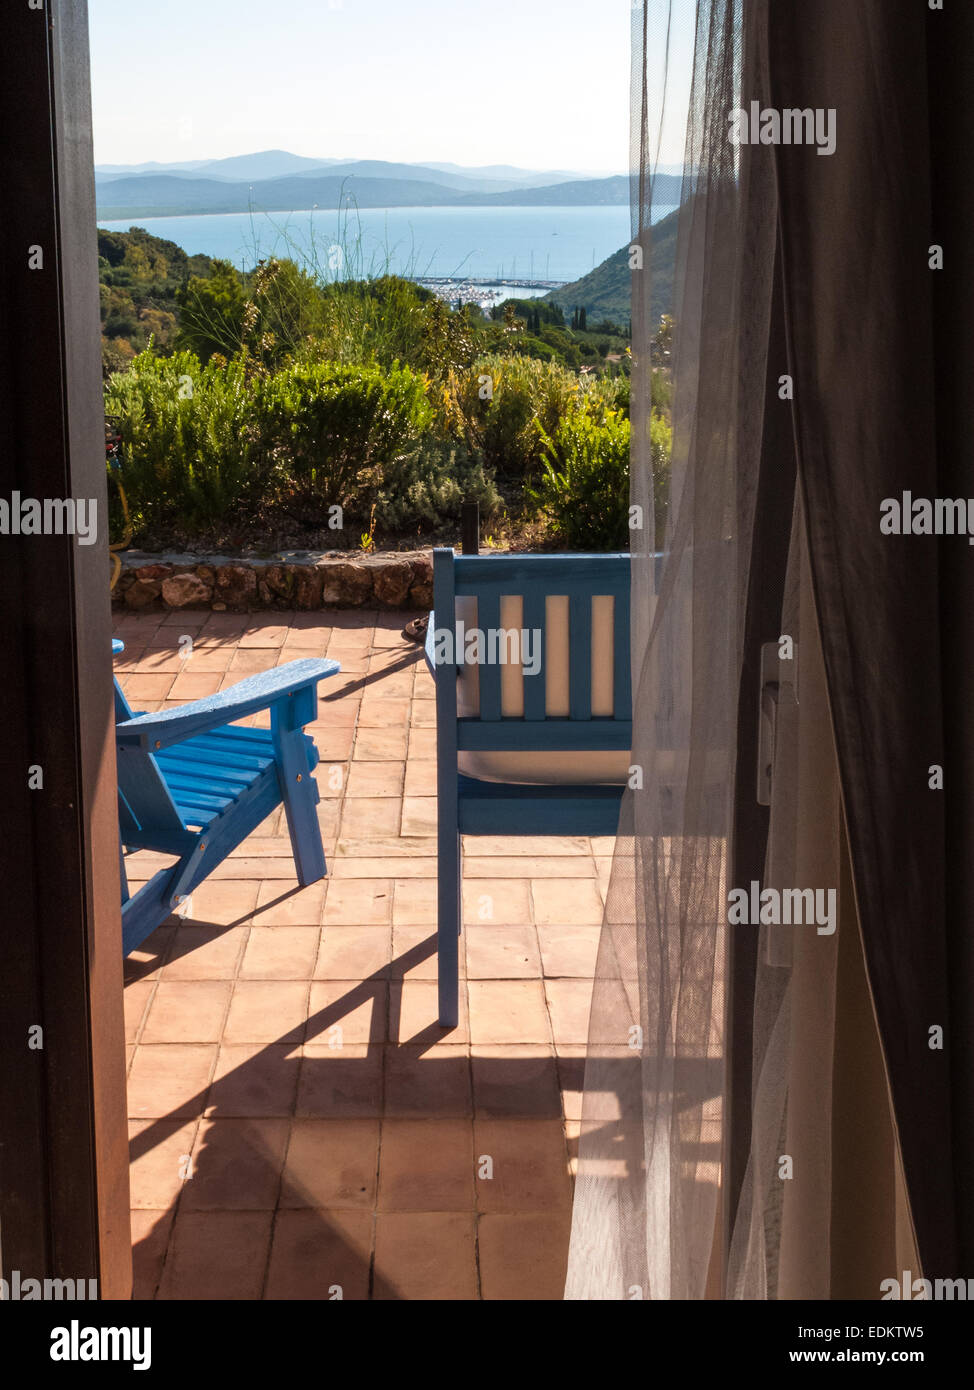 two blue wooden deckchairs on the patio of a villa on the sea views from inside - Stock Image